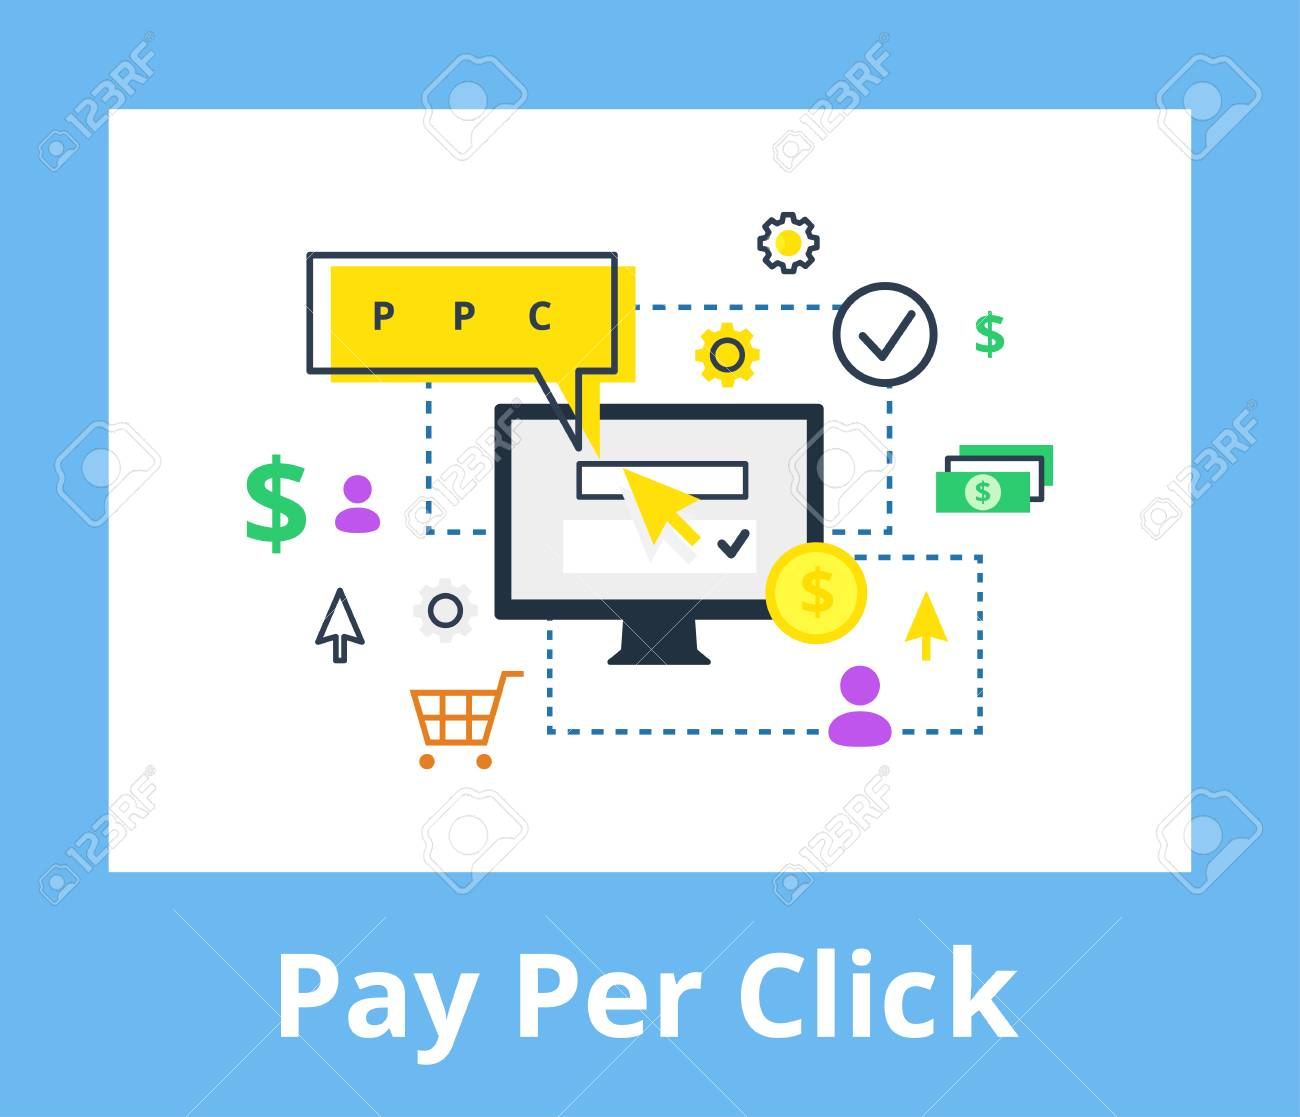 Some Highly effective Advantages of Utilizing PPC Promoting Companies